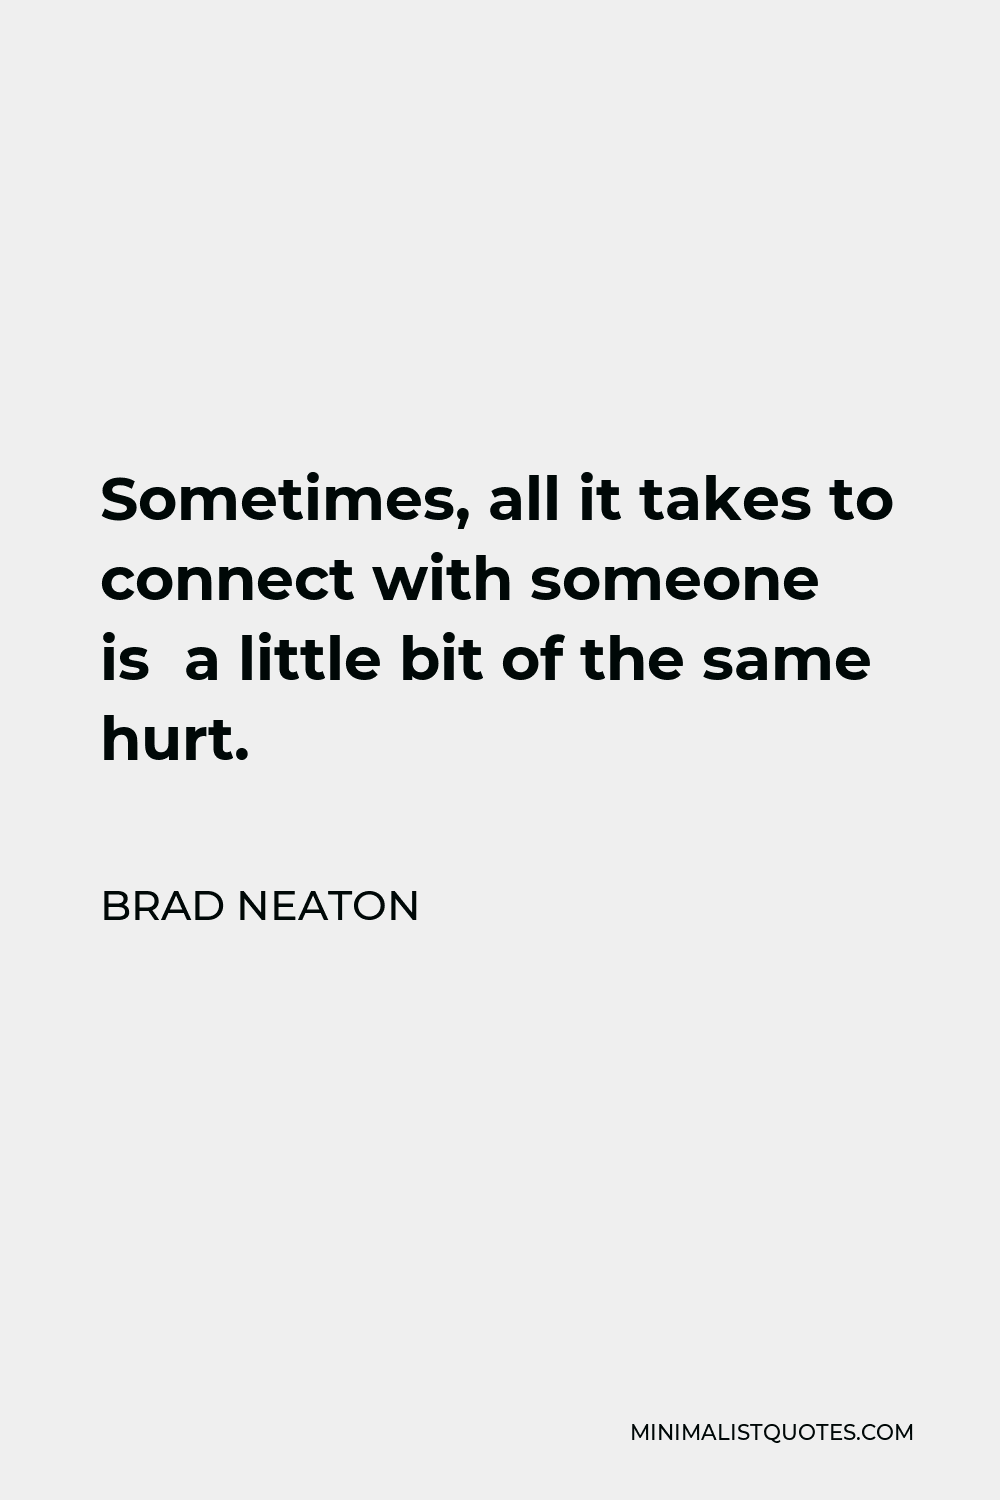 Brad Neaton Quote - Sometimes, all it takes to connect with someone is a little bit of the same hurt.